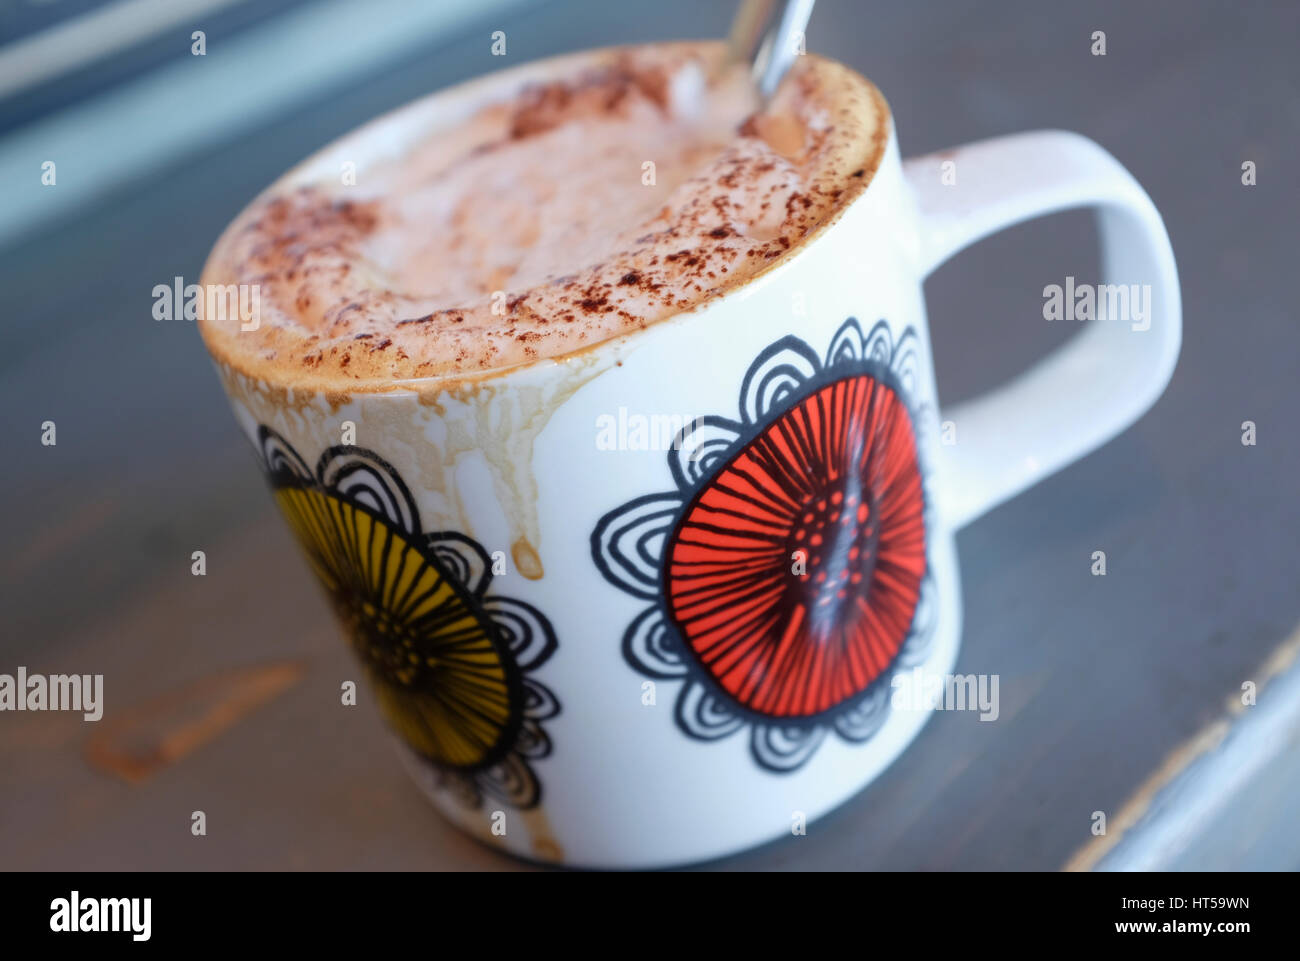 homemade cappuccino coffee in floral design mug - Stock Image